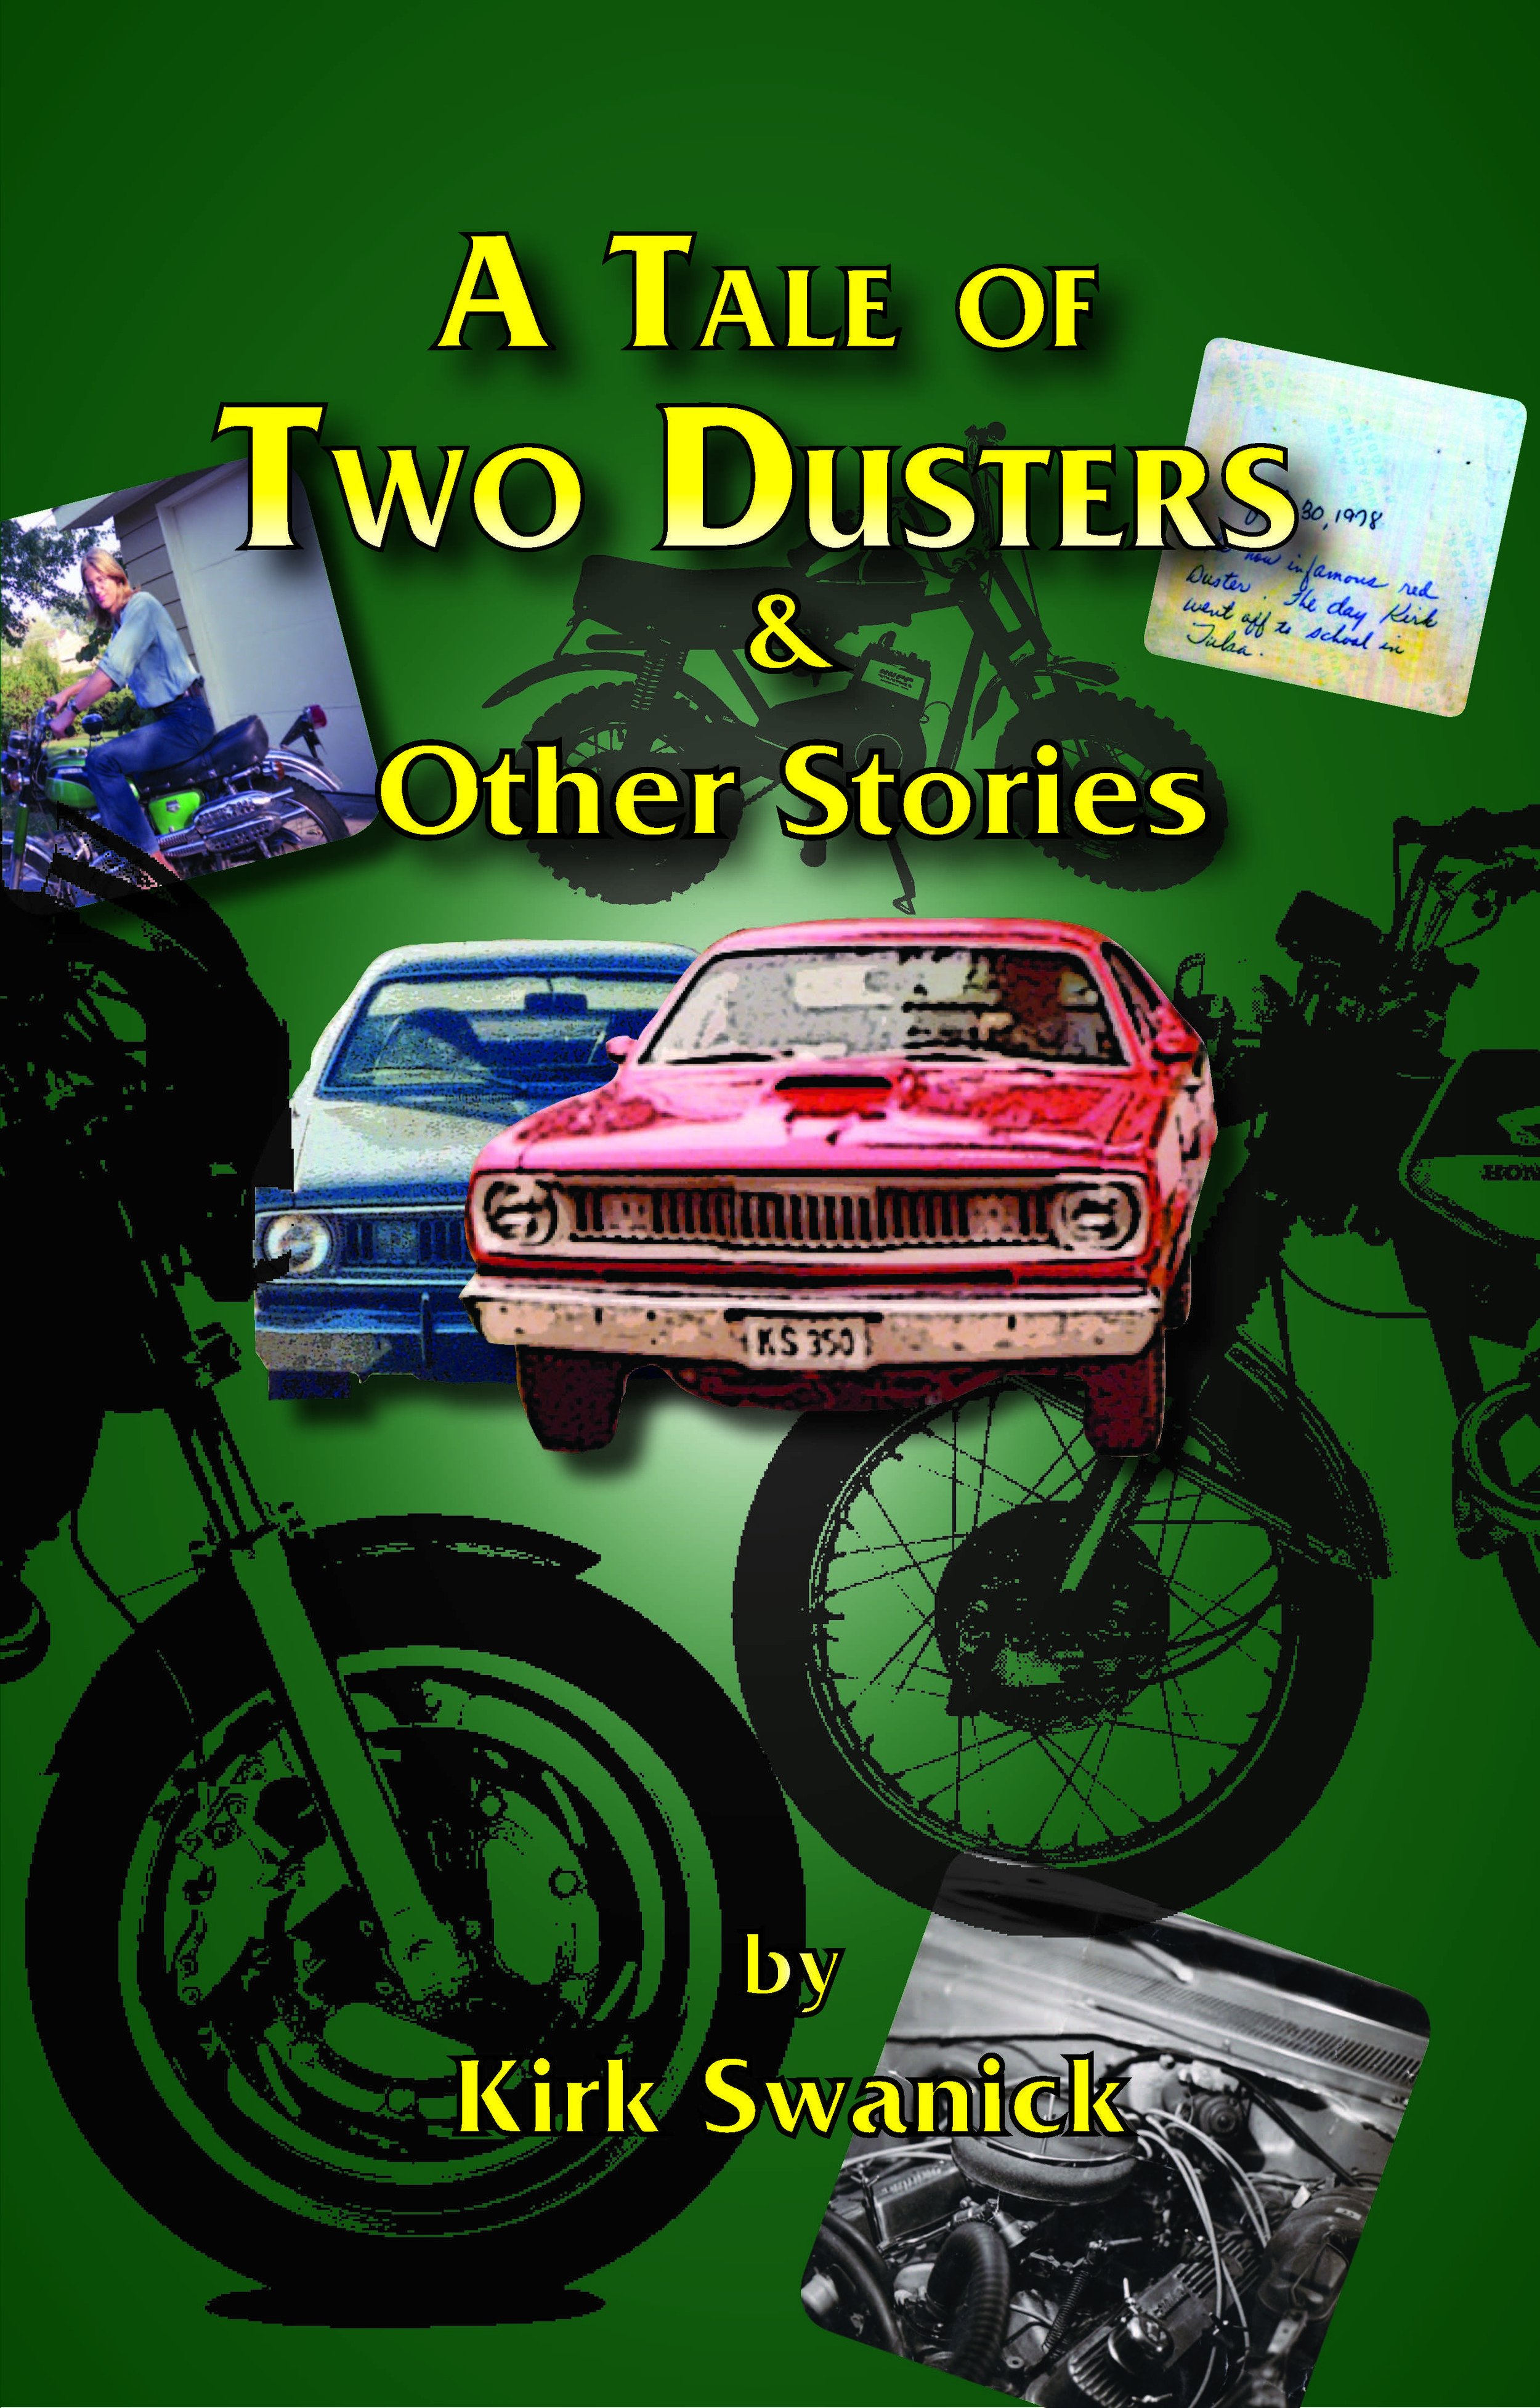 Michael Fitterling - taleoftwodusters_frontcover_13_09_04_003.jpg